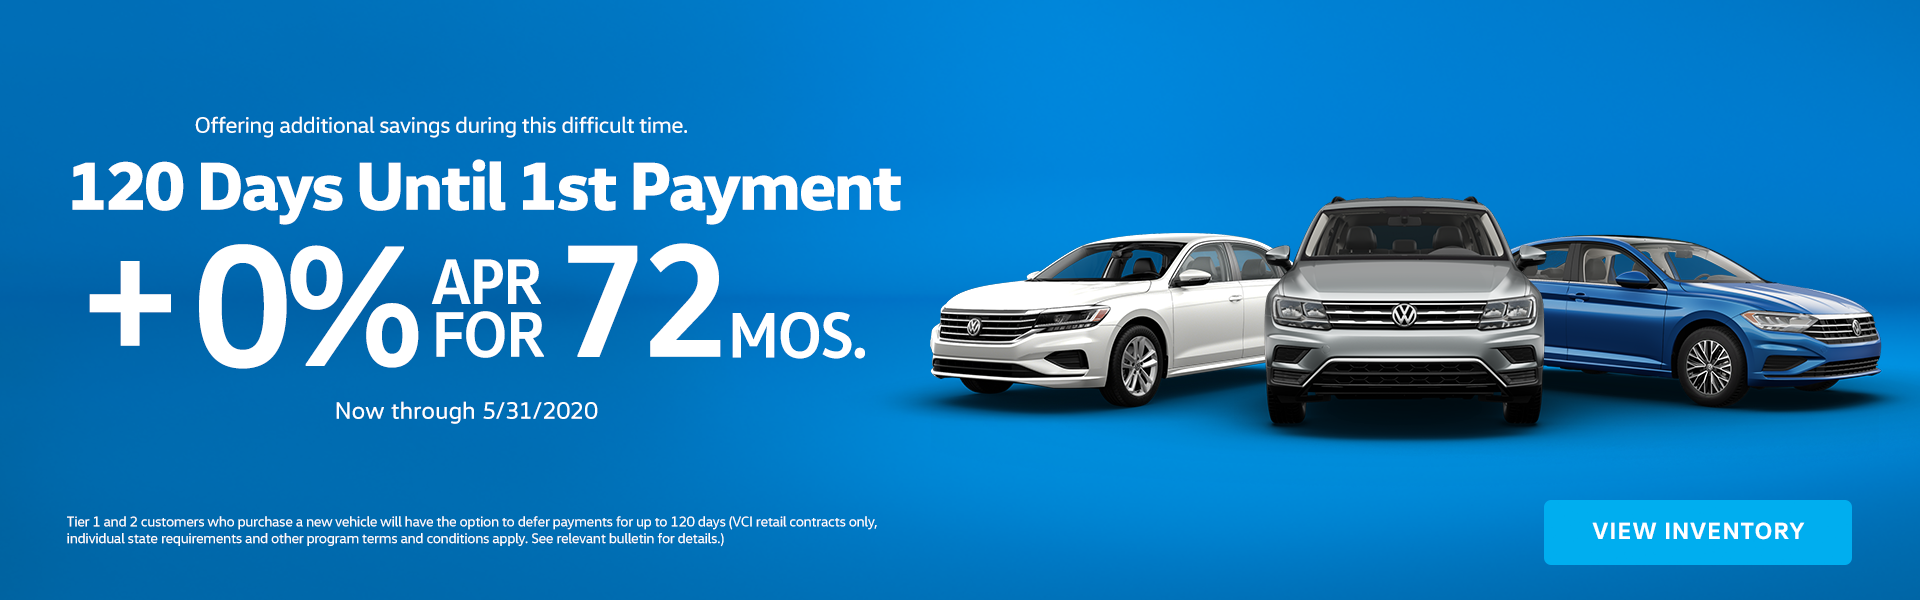 120 Days no Payment and 0% APR for 72 Months